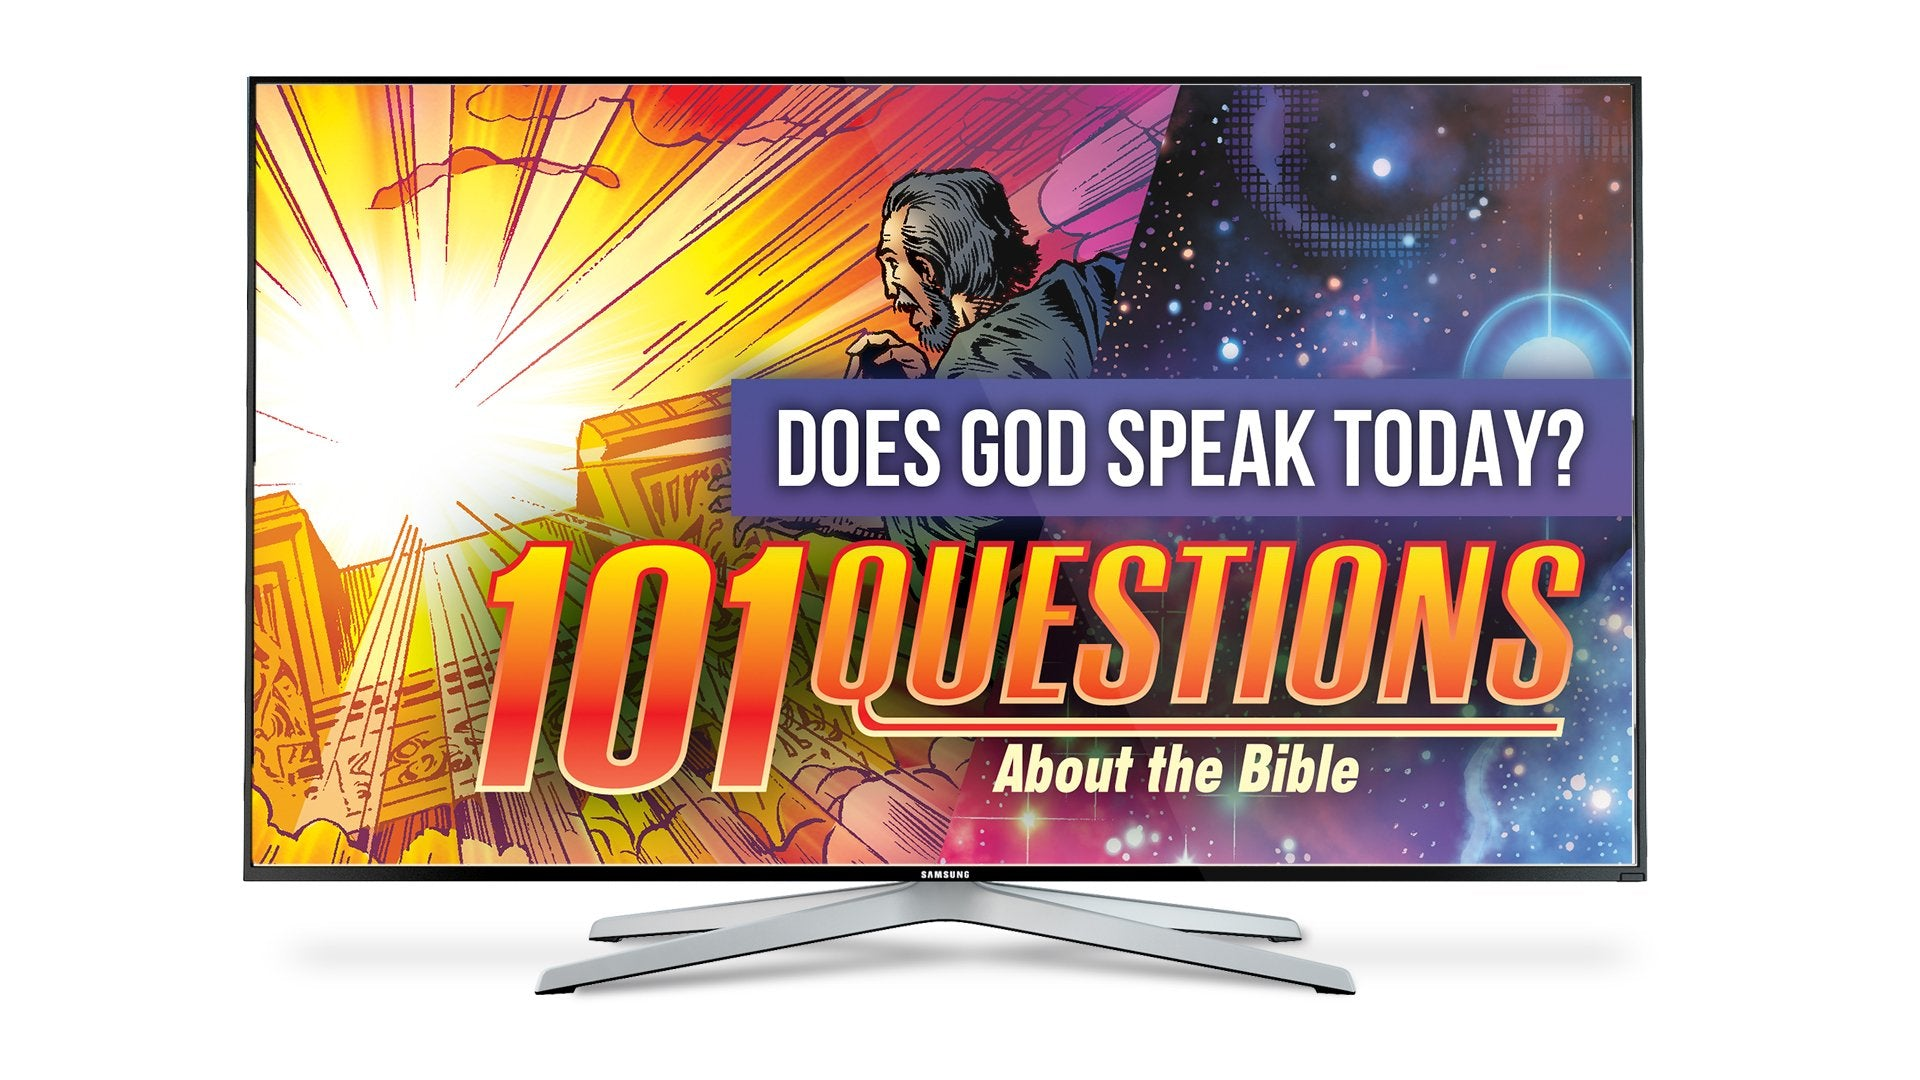 101 Questions: #3 Does God Speak Today? - Kingstone Comics